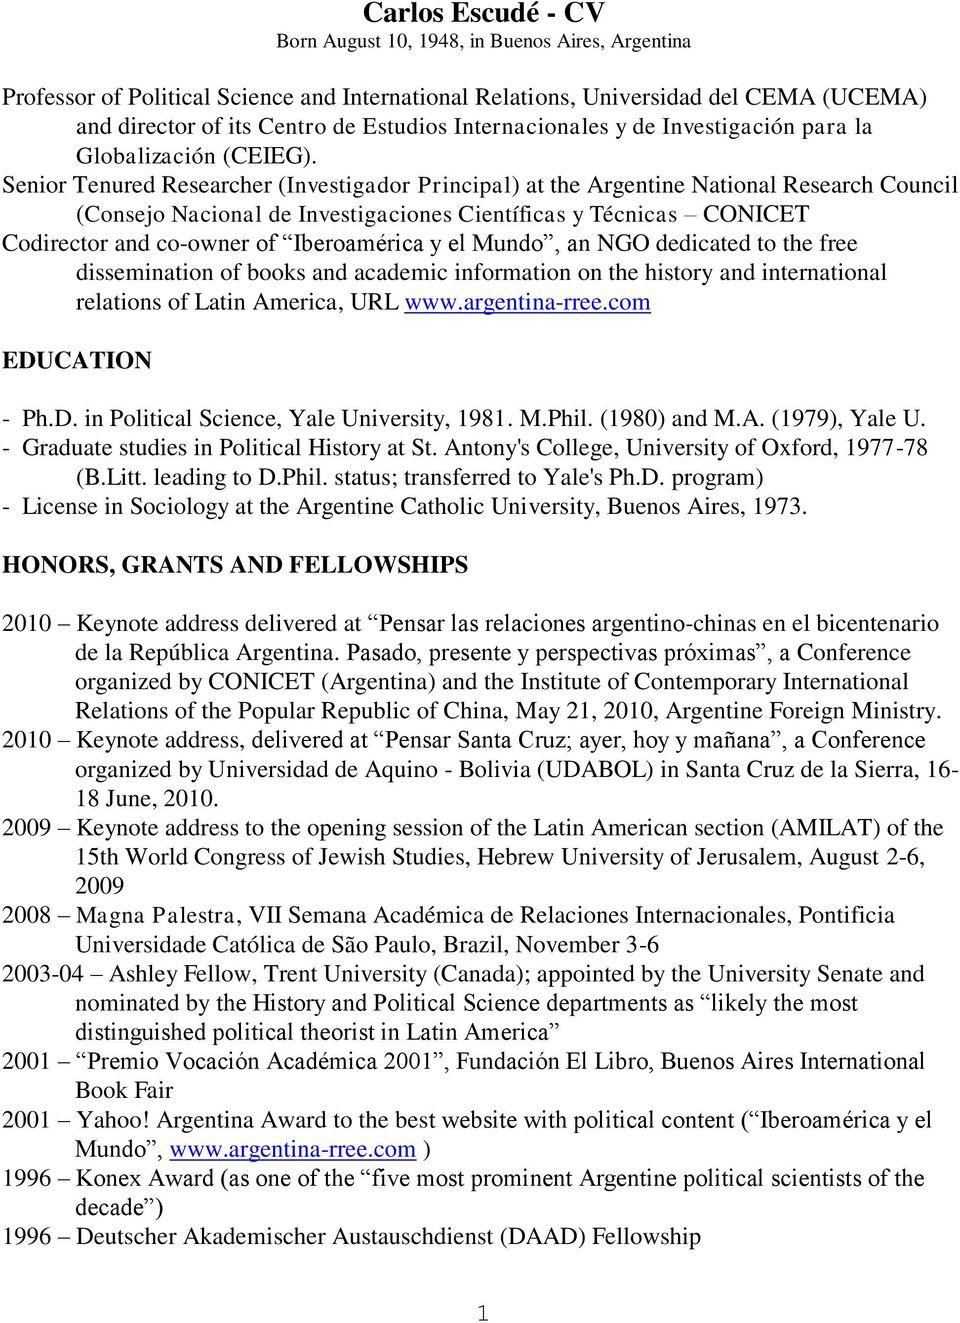 Senior Tenured Researcher (Investigador Principal) at the Argentine National Research Council (Consejo Nacional de Investigaciones Científicas y Técnicas CONICET Codirector and co-owner of